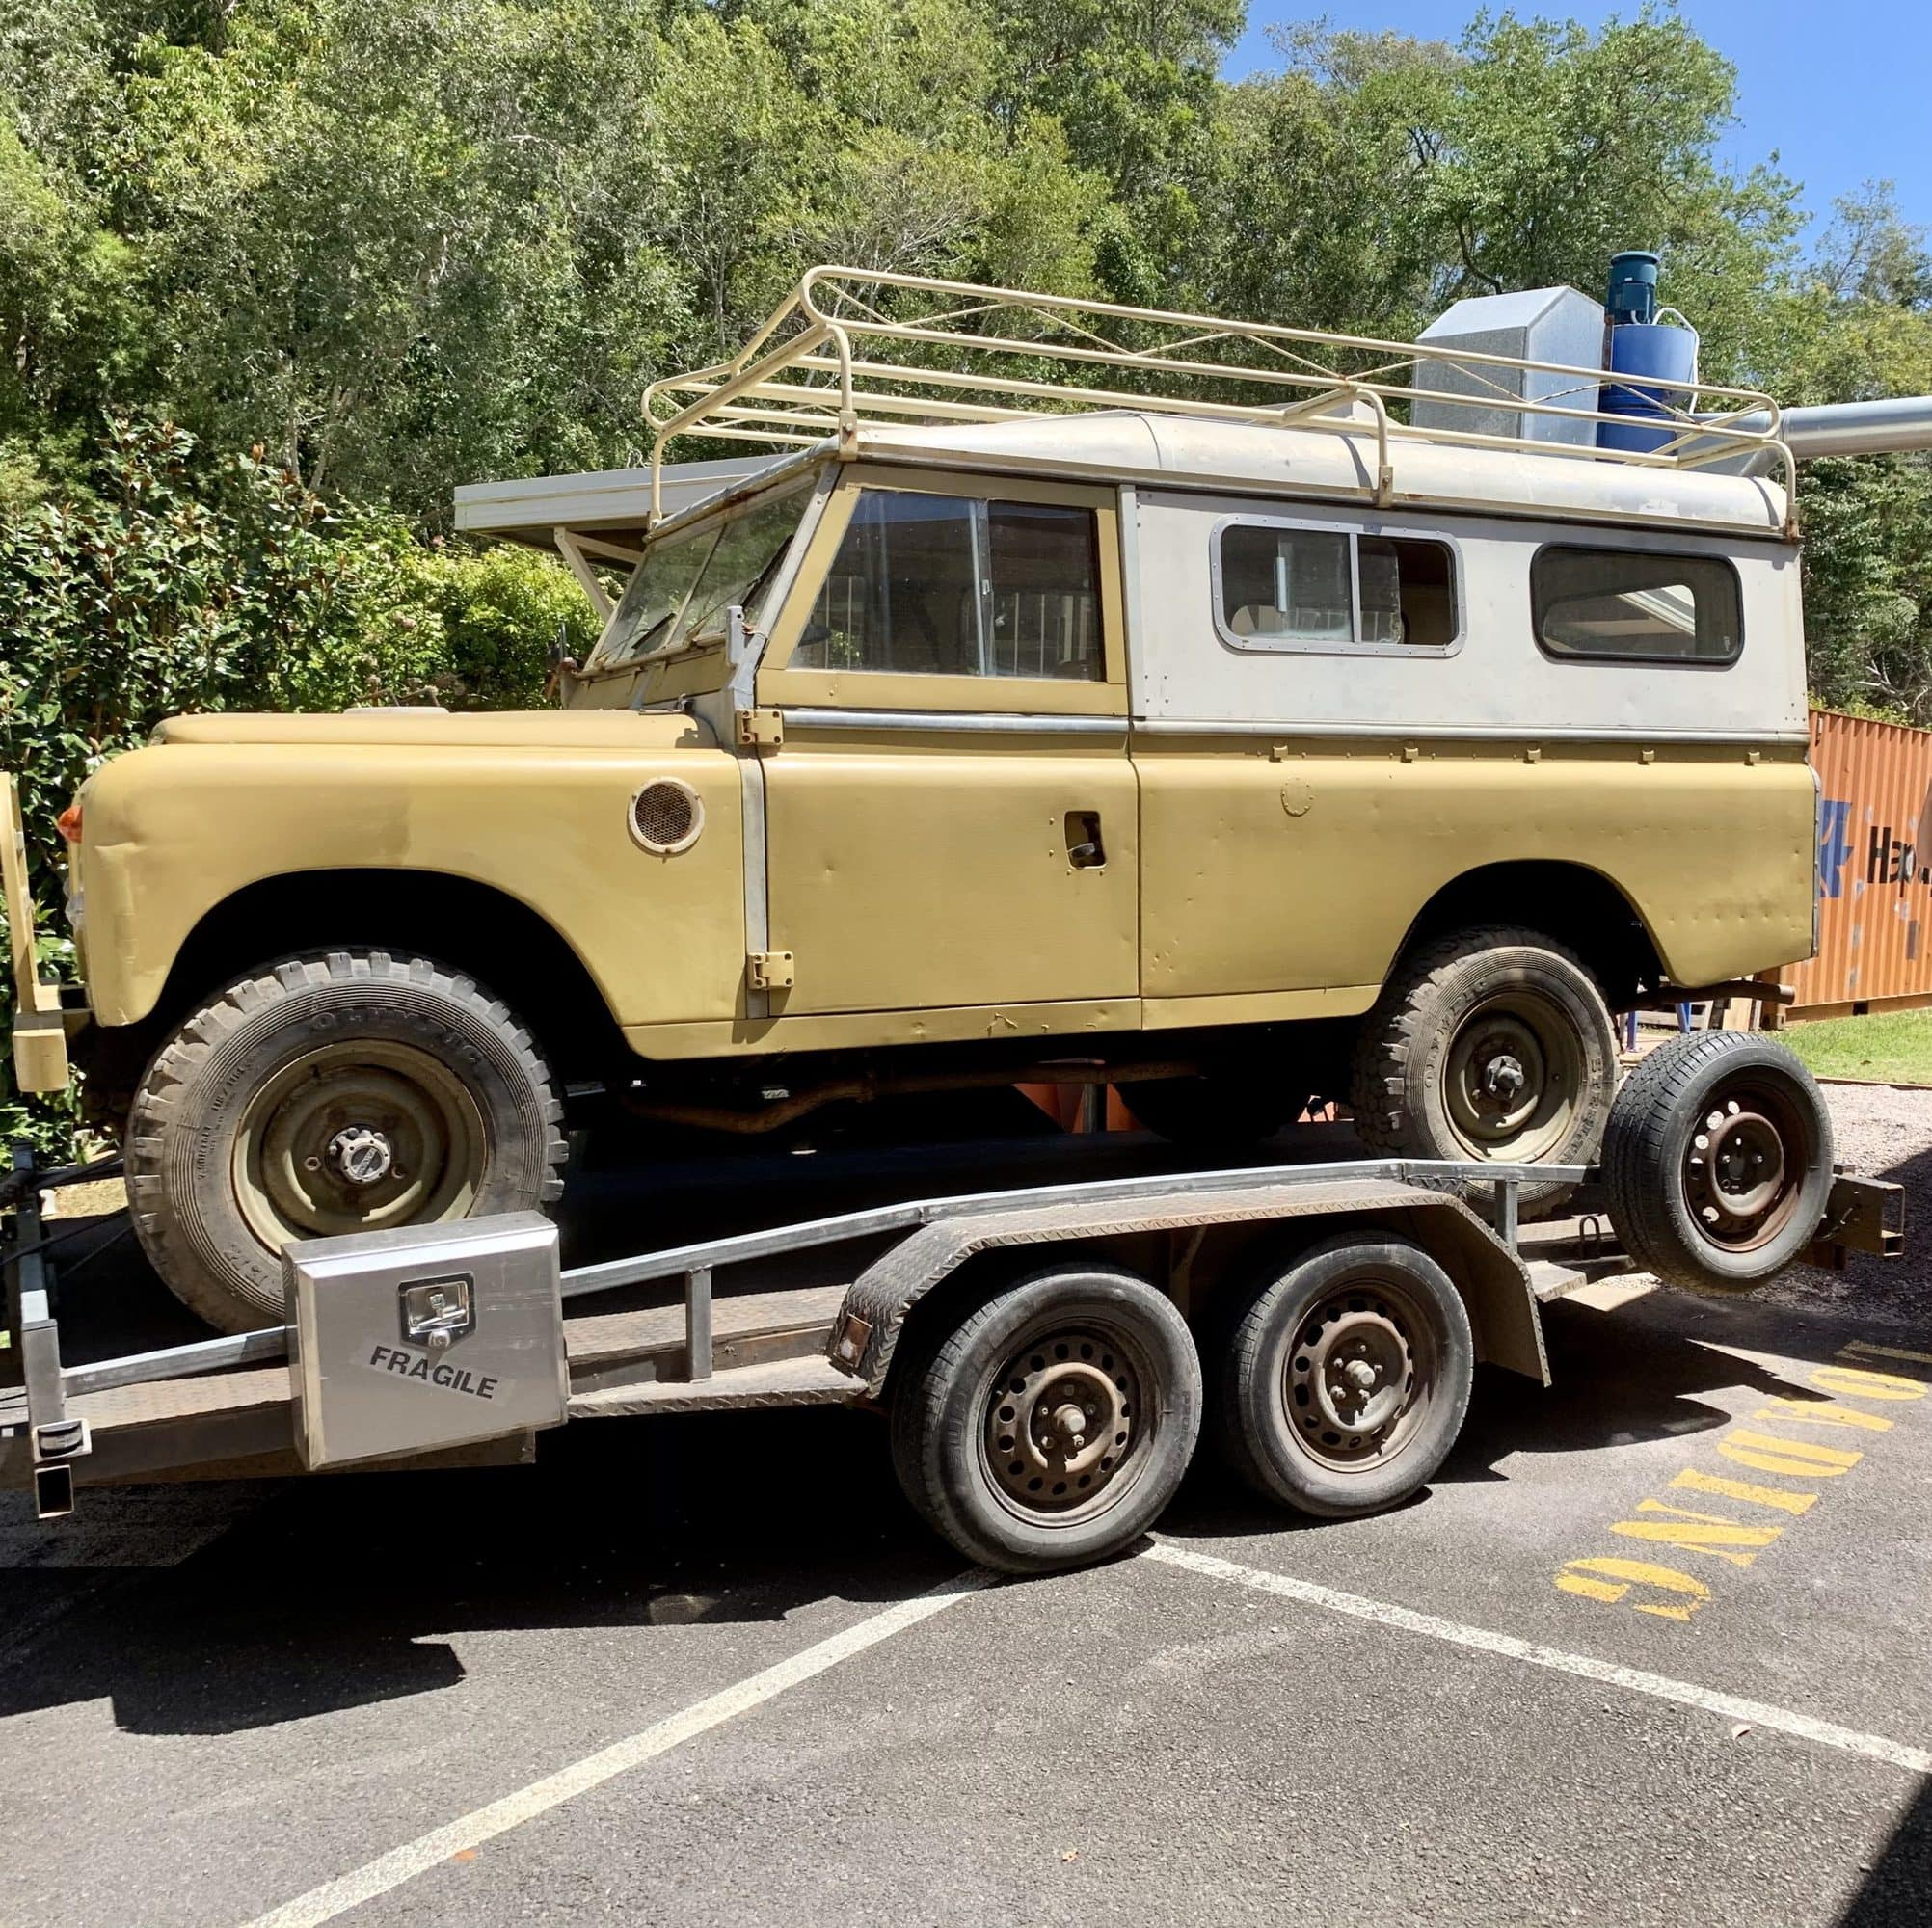 Flinders Electric Vehicle Project